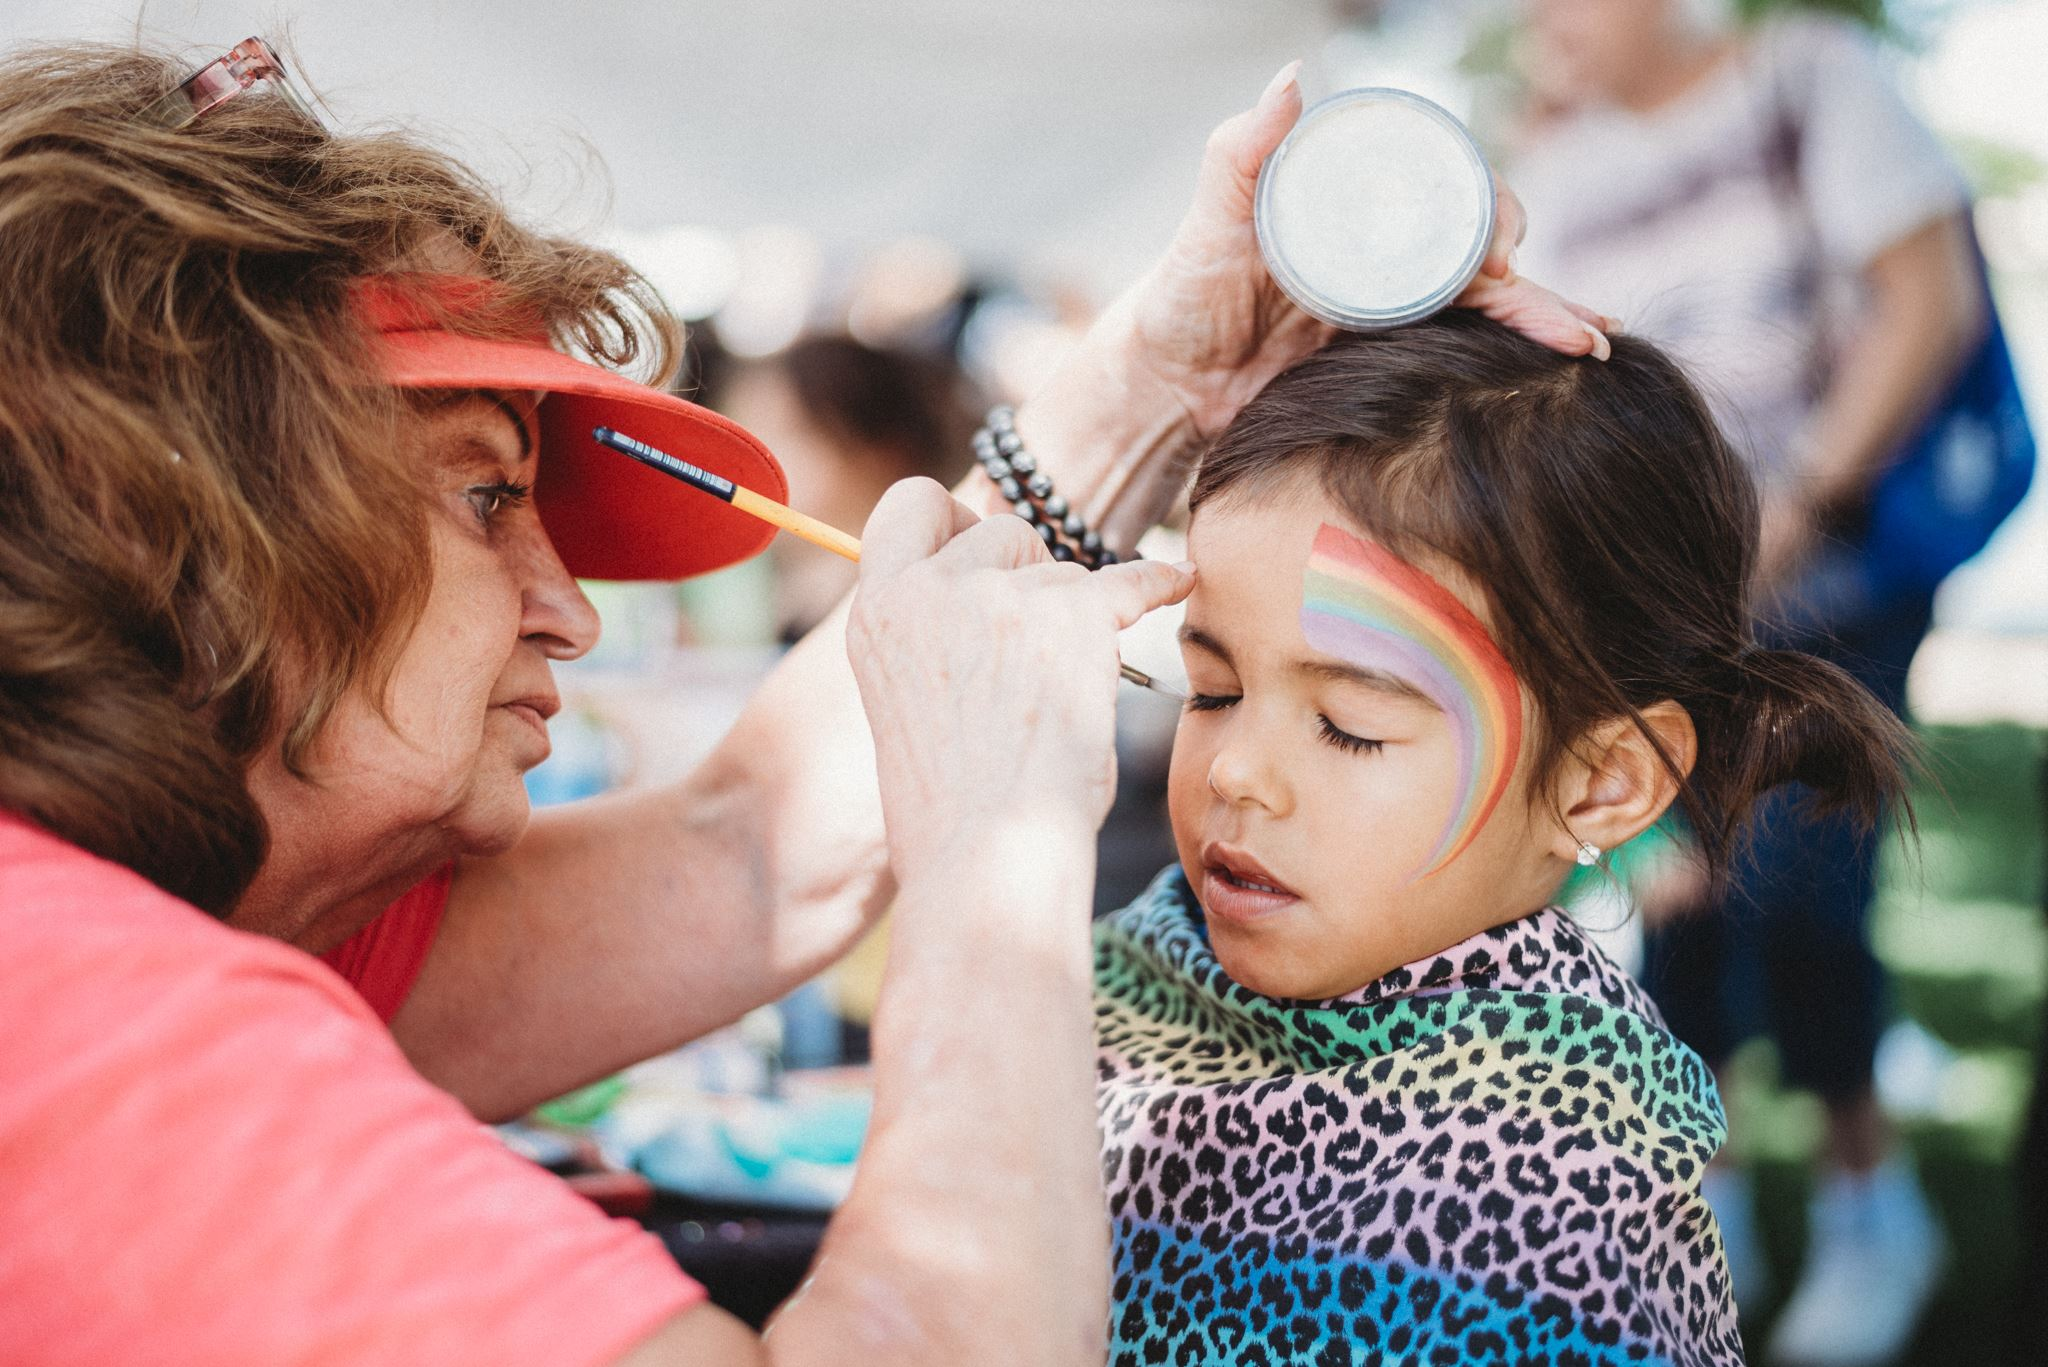 Young Girl Getting a Rainbow Painted on Her Face